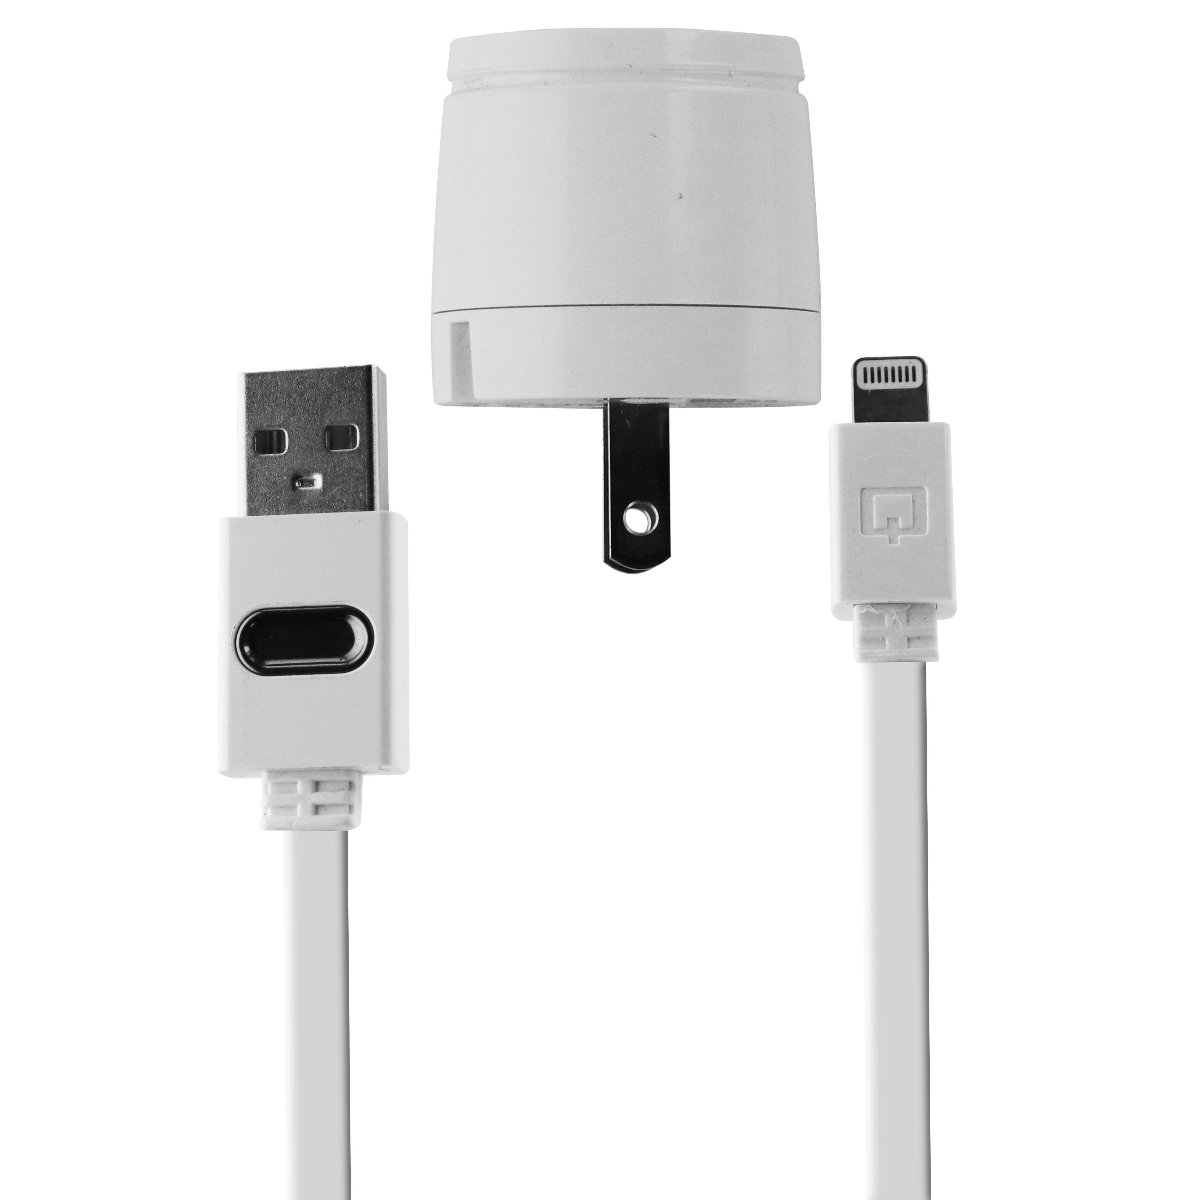 Original Qmadix USB Travel Data Sync Charging Kit with Lightning Cable - White